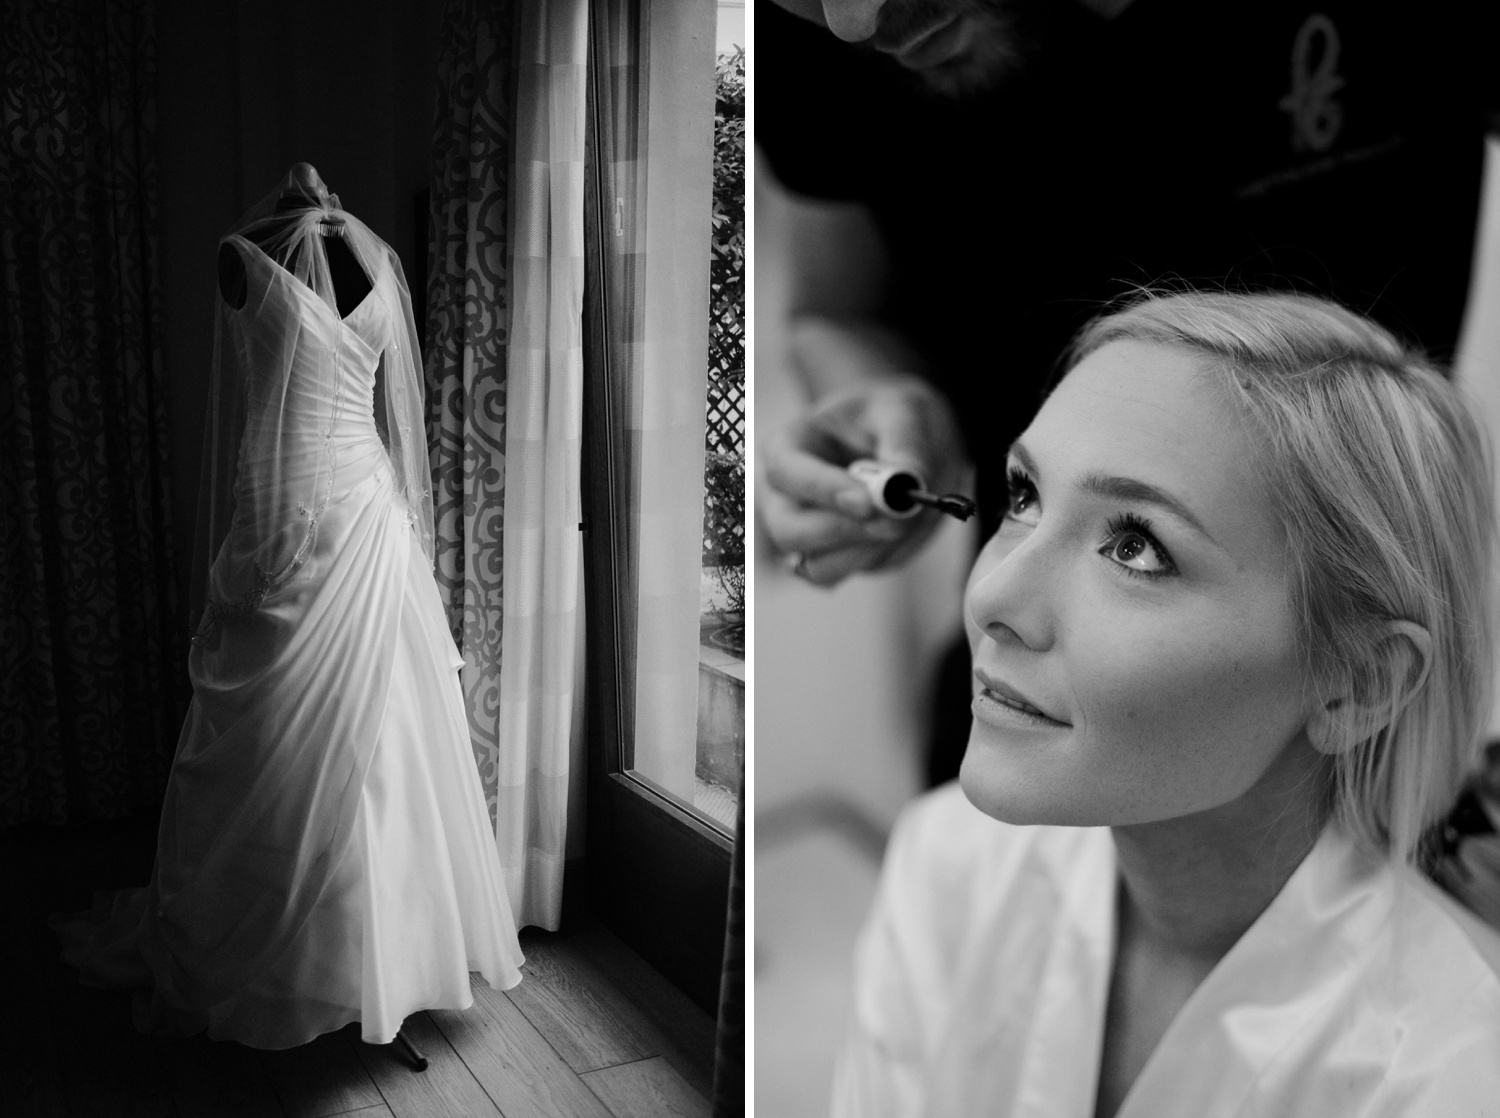 wedding-photographer-florence-fourseason-tuscany_1193.jpg